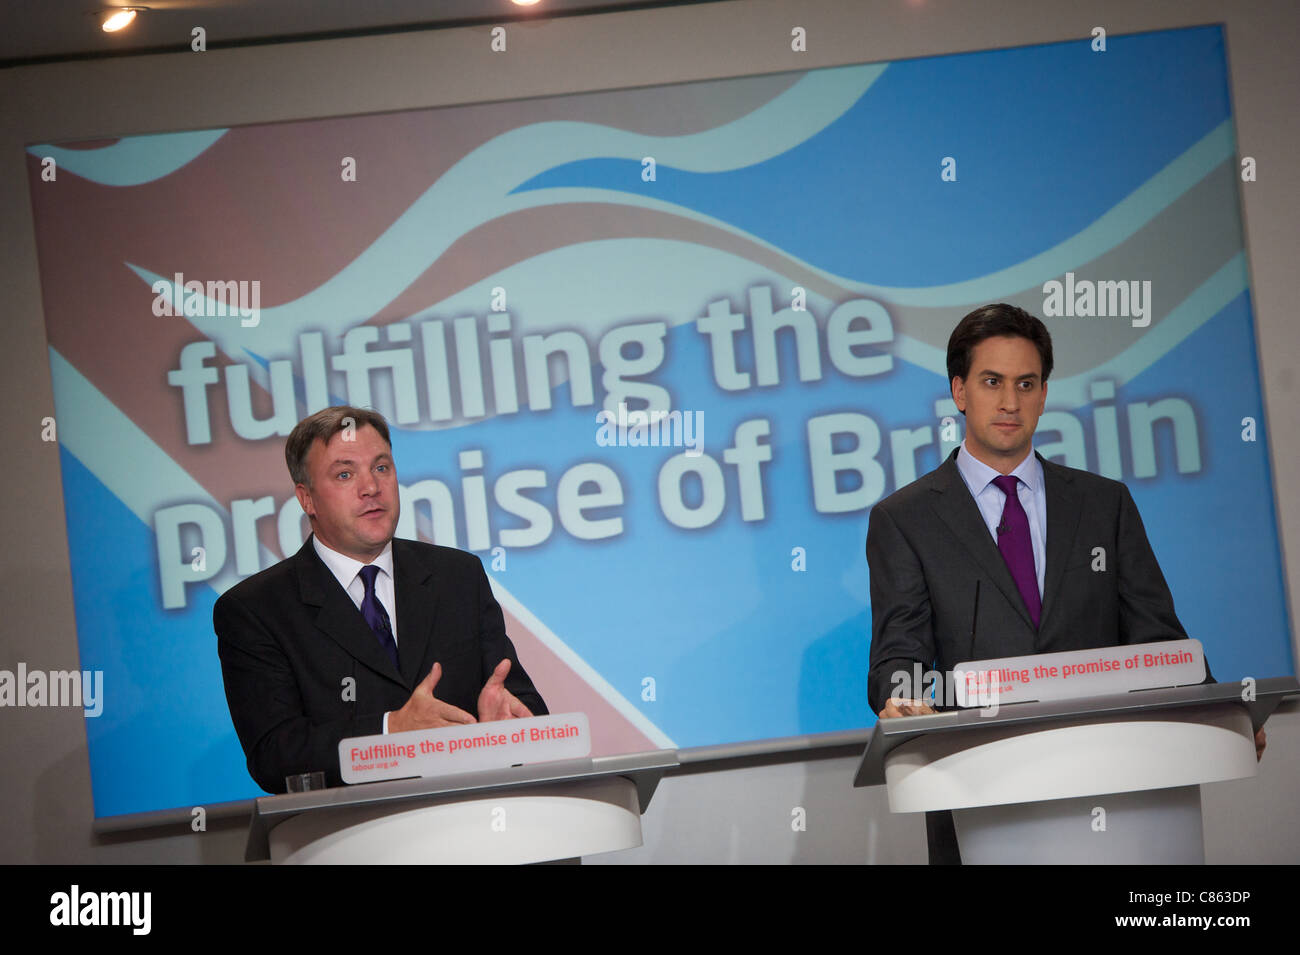 LONDON, UNITED KINGDOM 13 OCTOBER. Leader of the Labour party Ed Miliband and Shadow Chancellor Ed Balls speak at - Stock Image